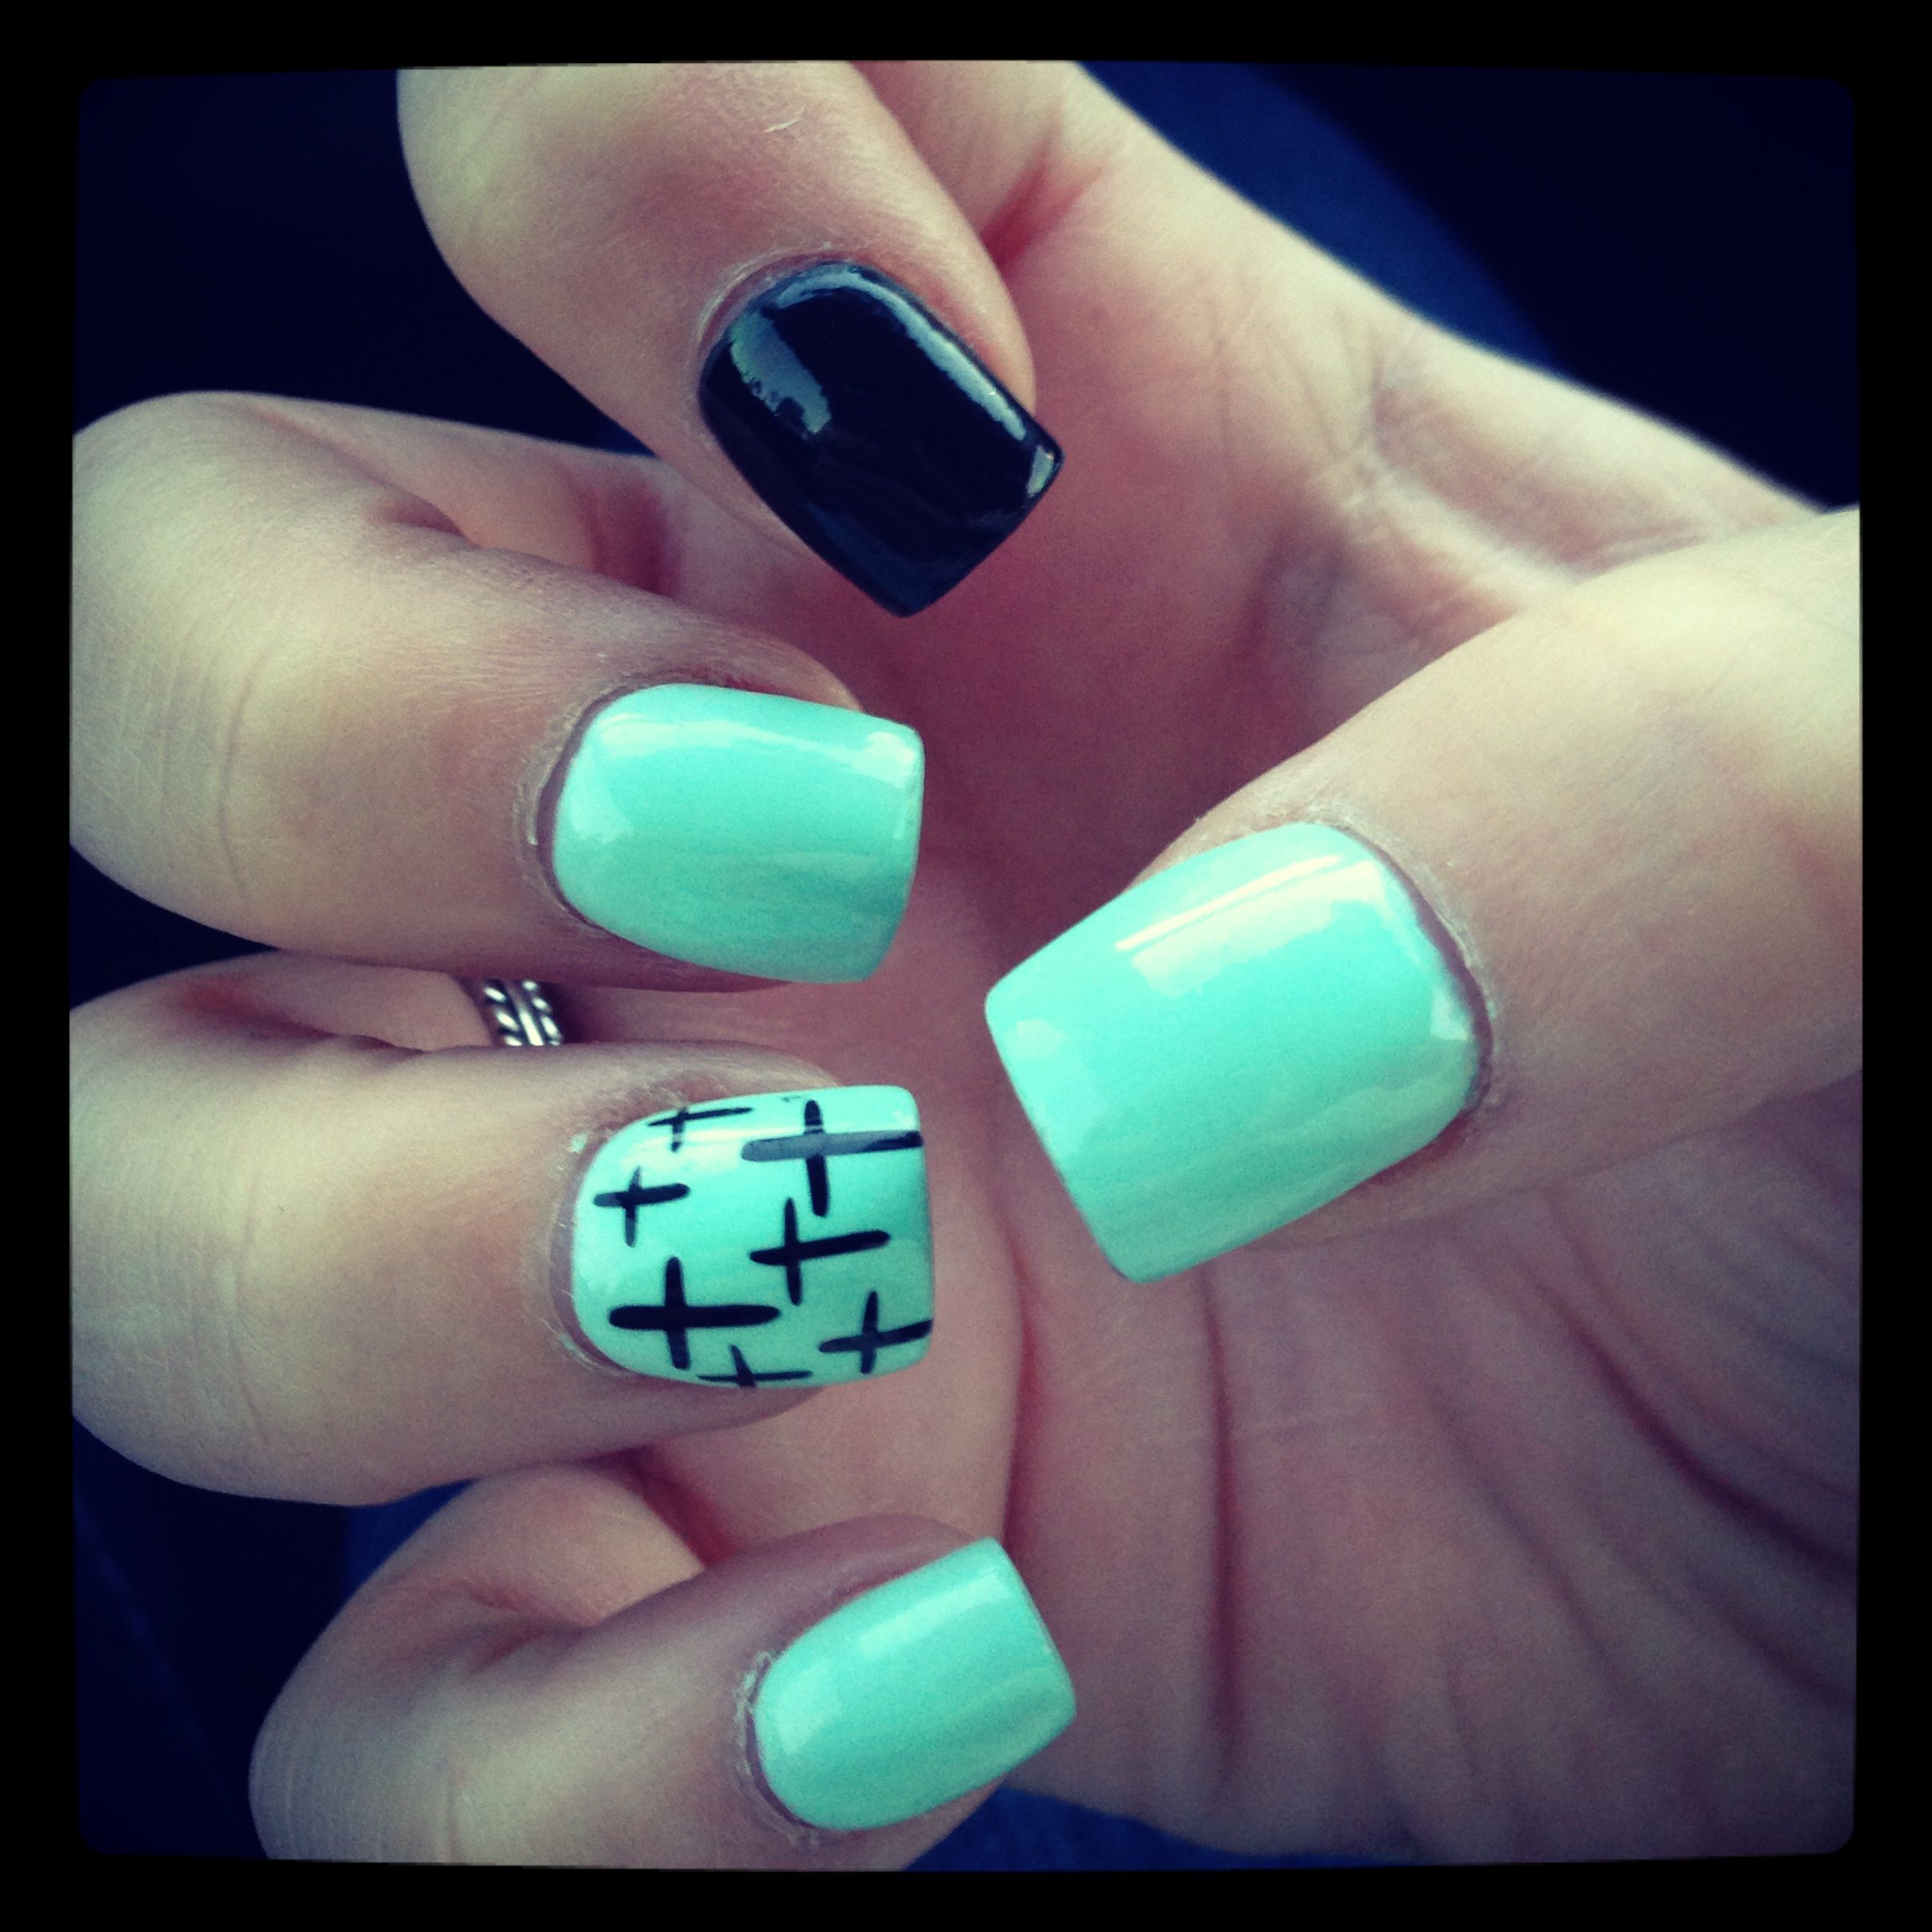 I Love My Nails Mint Nails Crosses Easy Nail Art